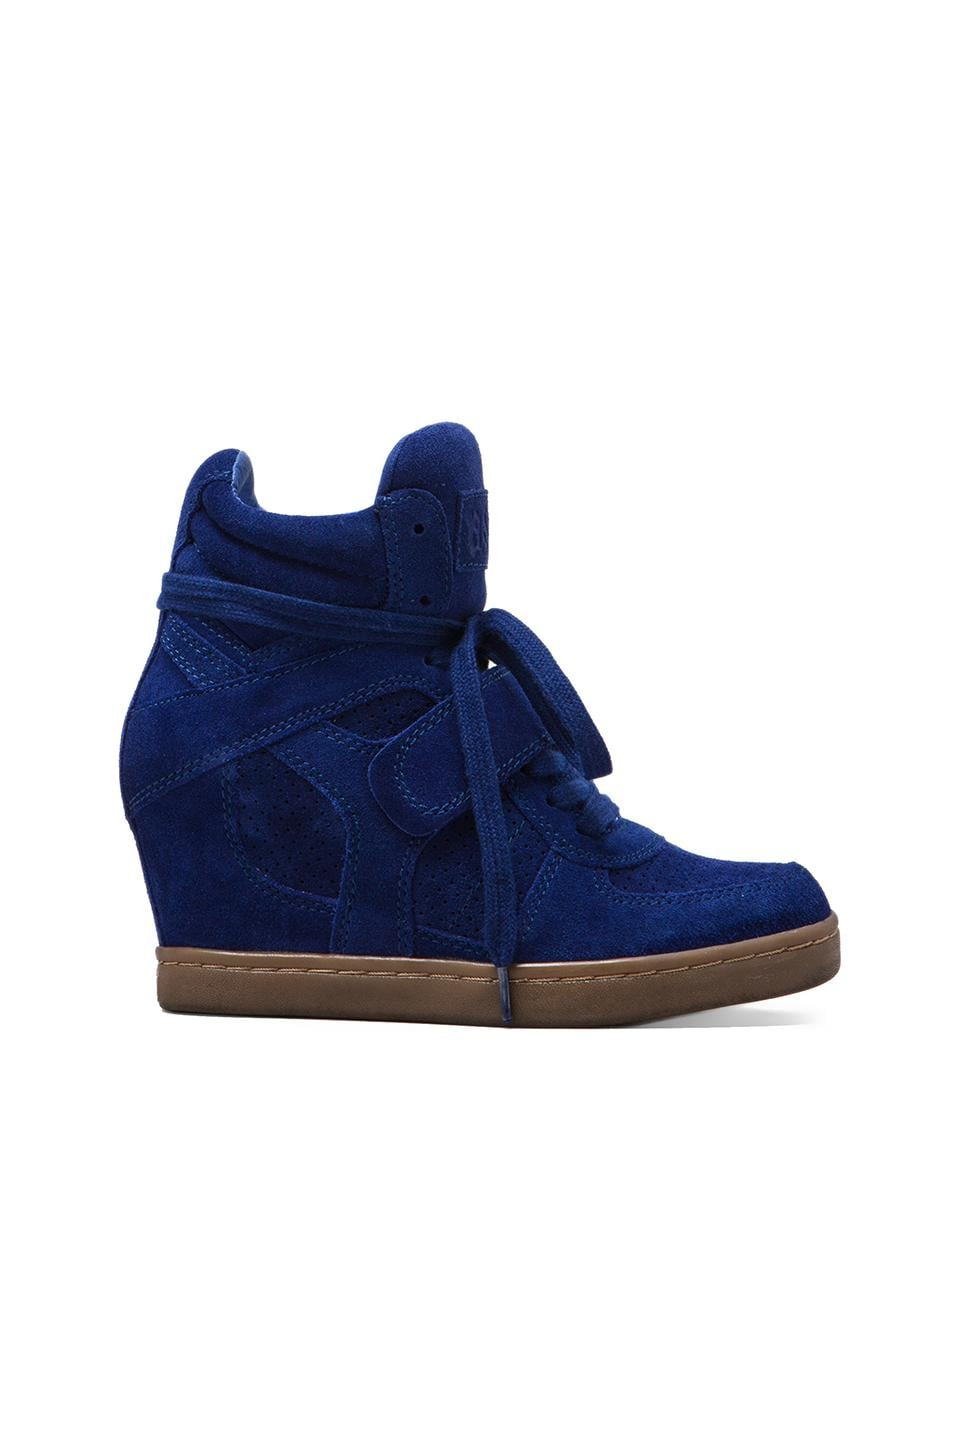 Ash Cool Wedge Sneaker in Cobalt #2